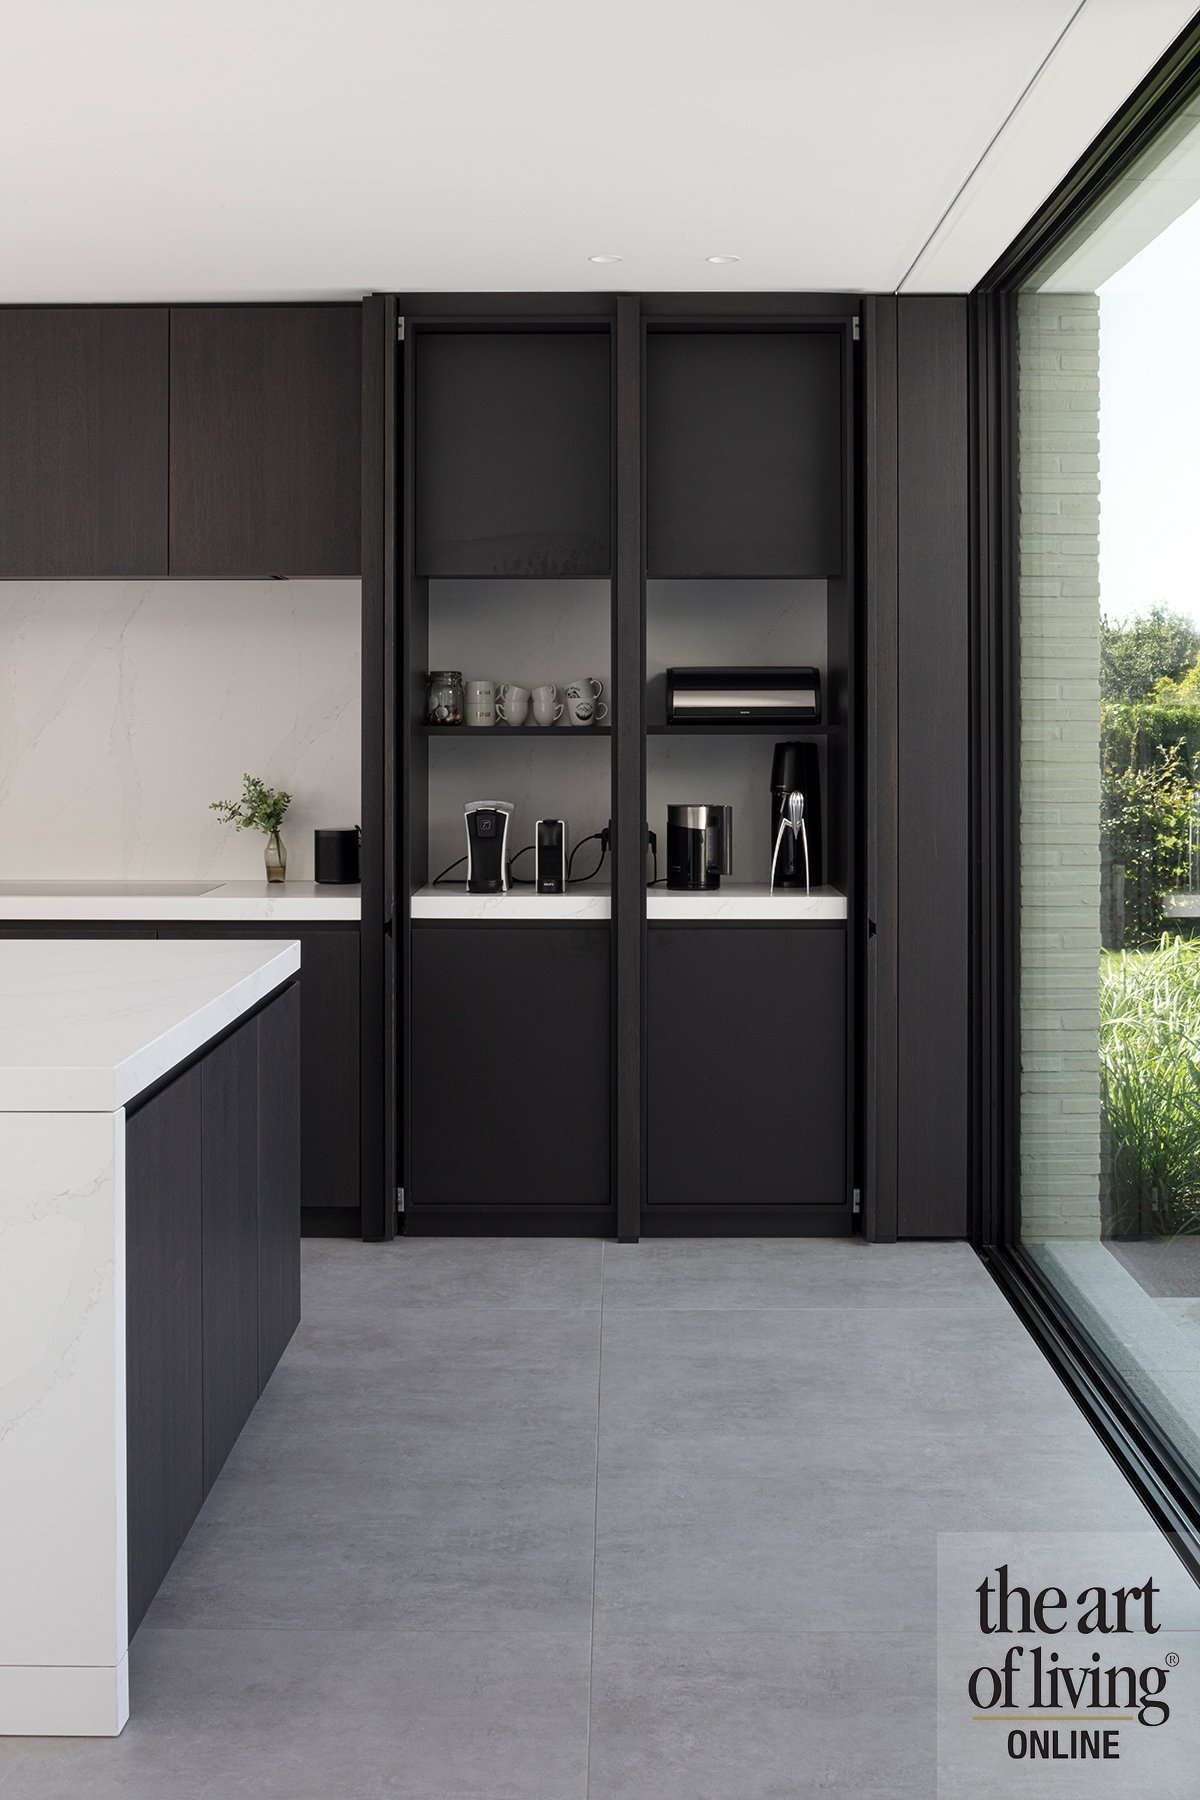 Moderne woning | TOOP Architectuur, the art of living